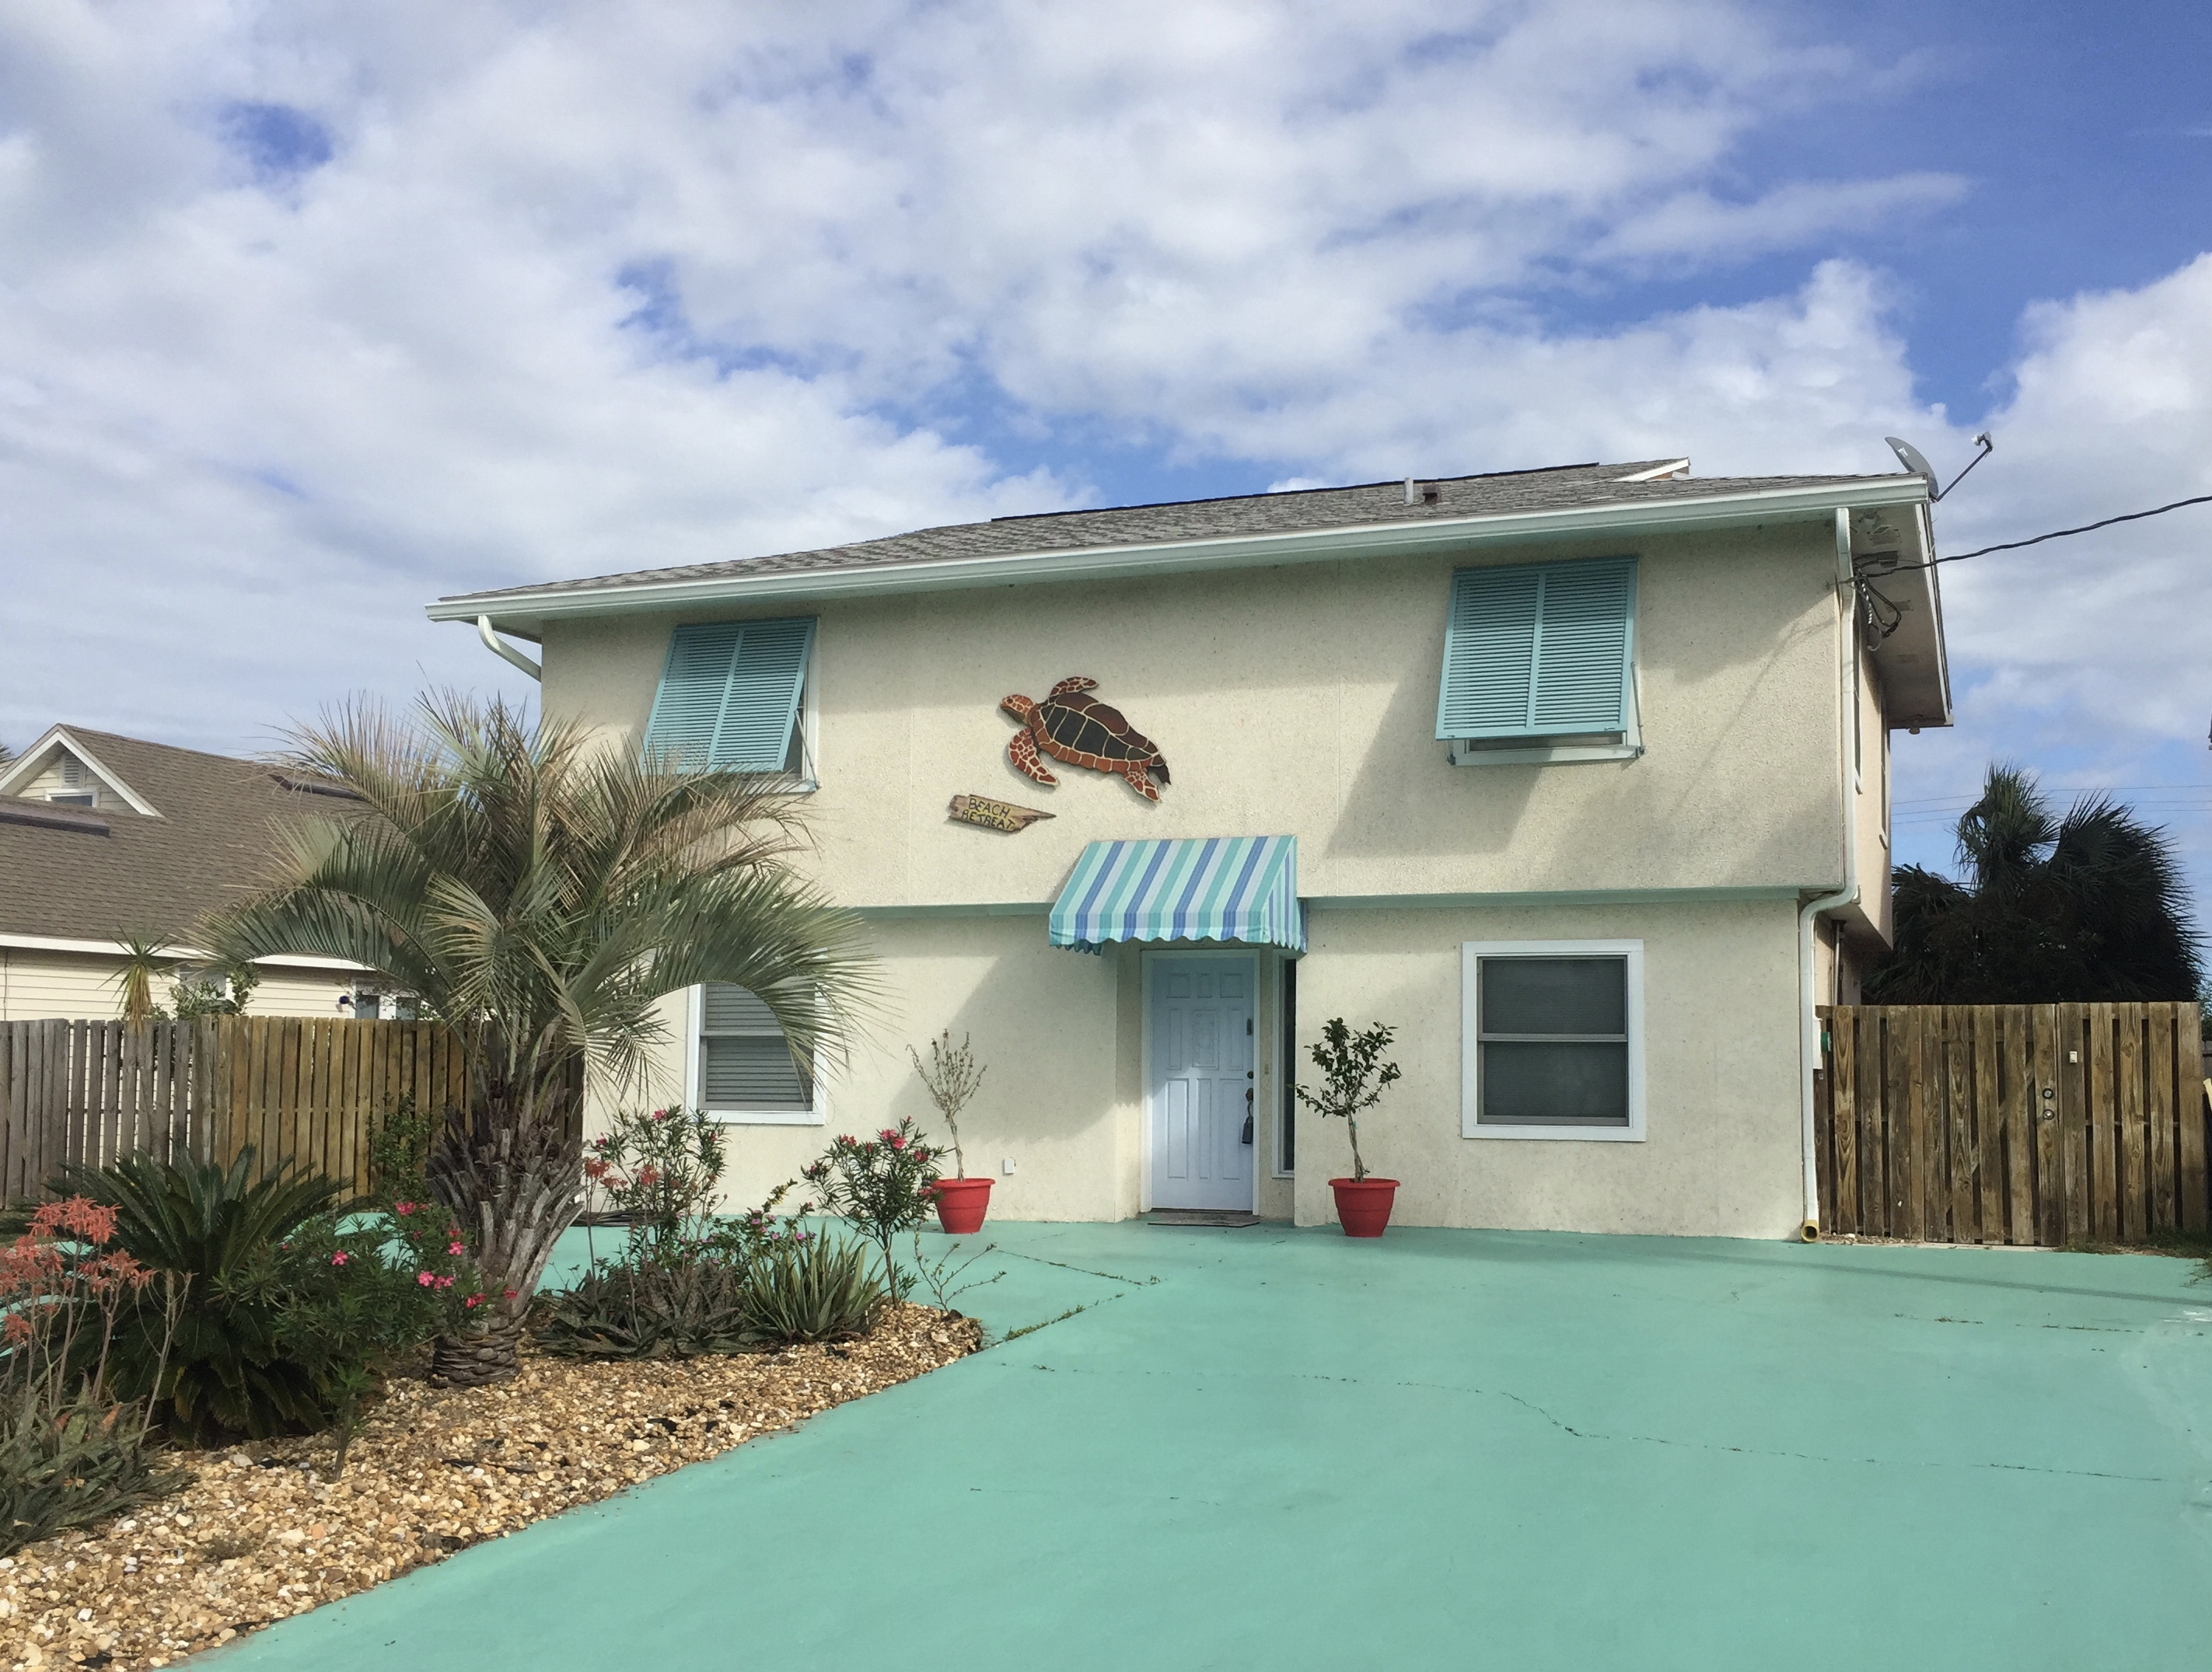 Duplex for Sale at 536 Tarpon 536 Tarpon Avenue Fernandina Beach, Florida, 32034 United States